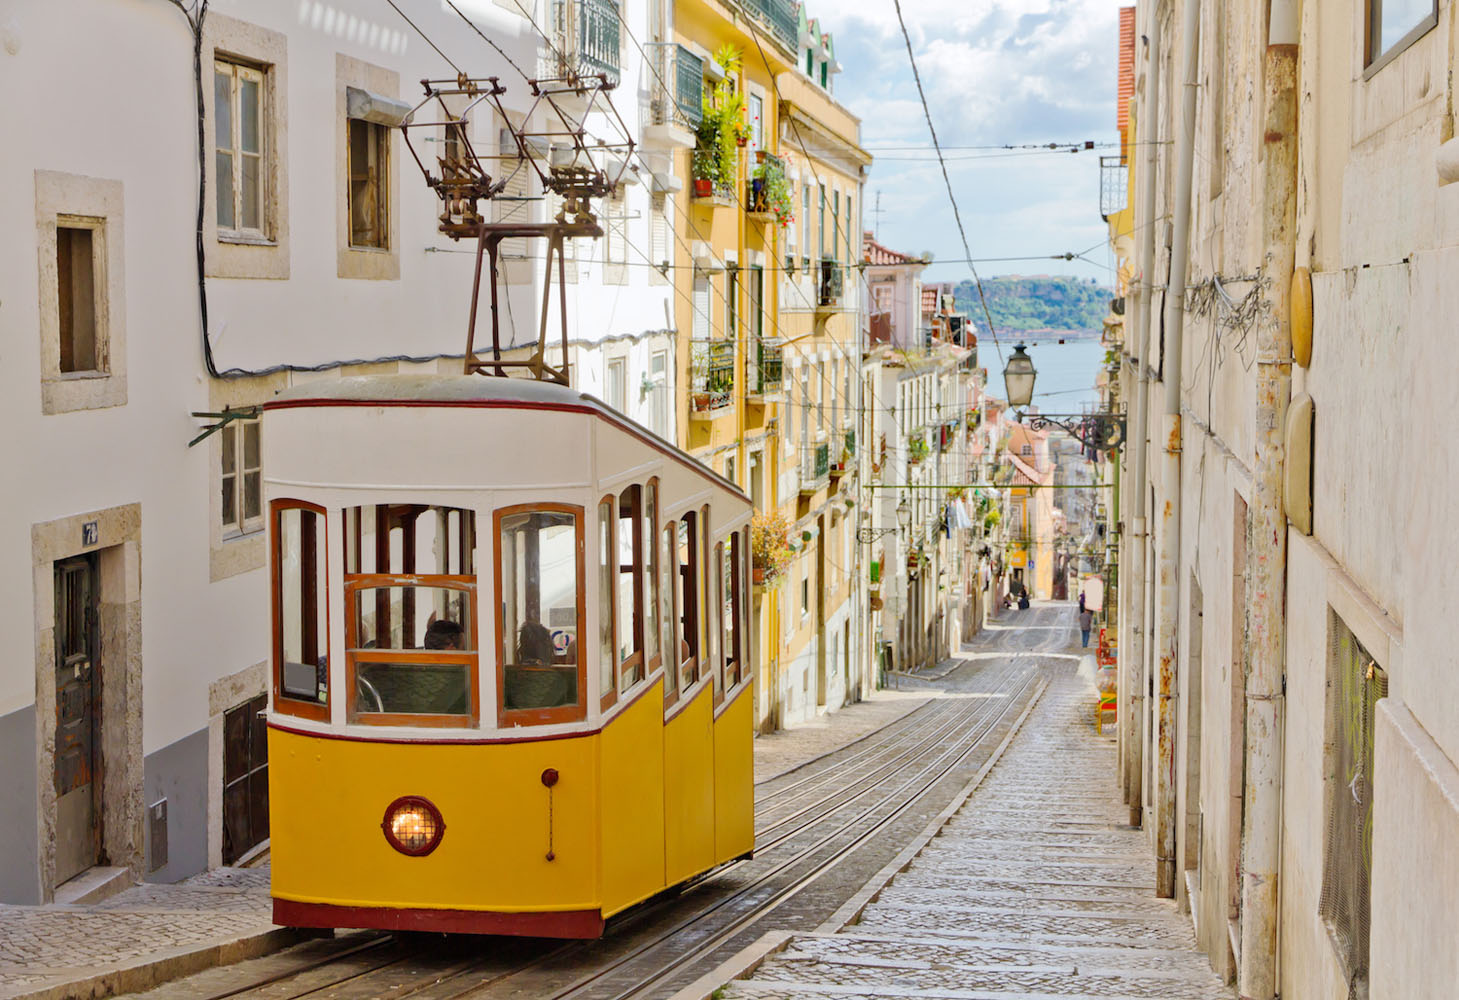 The best way to get a feel for Lisbon is by taking a tram ride through the city.